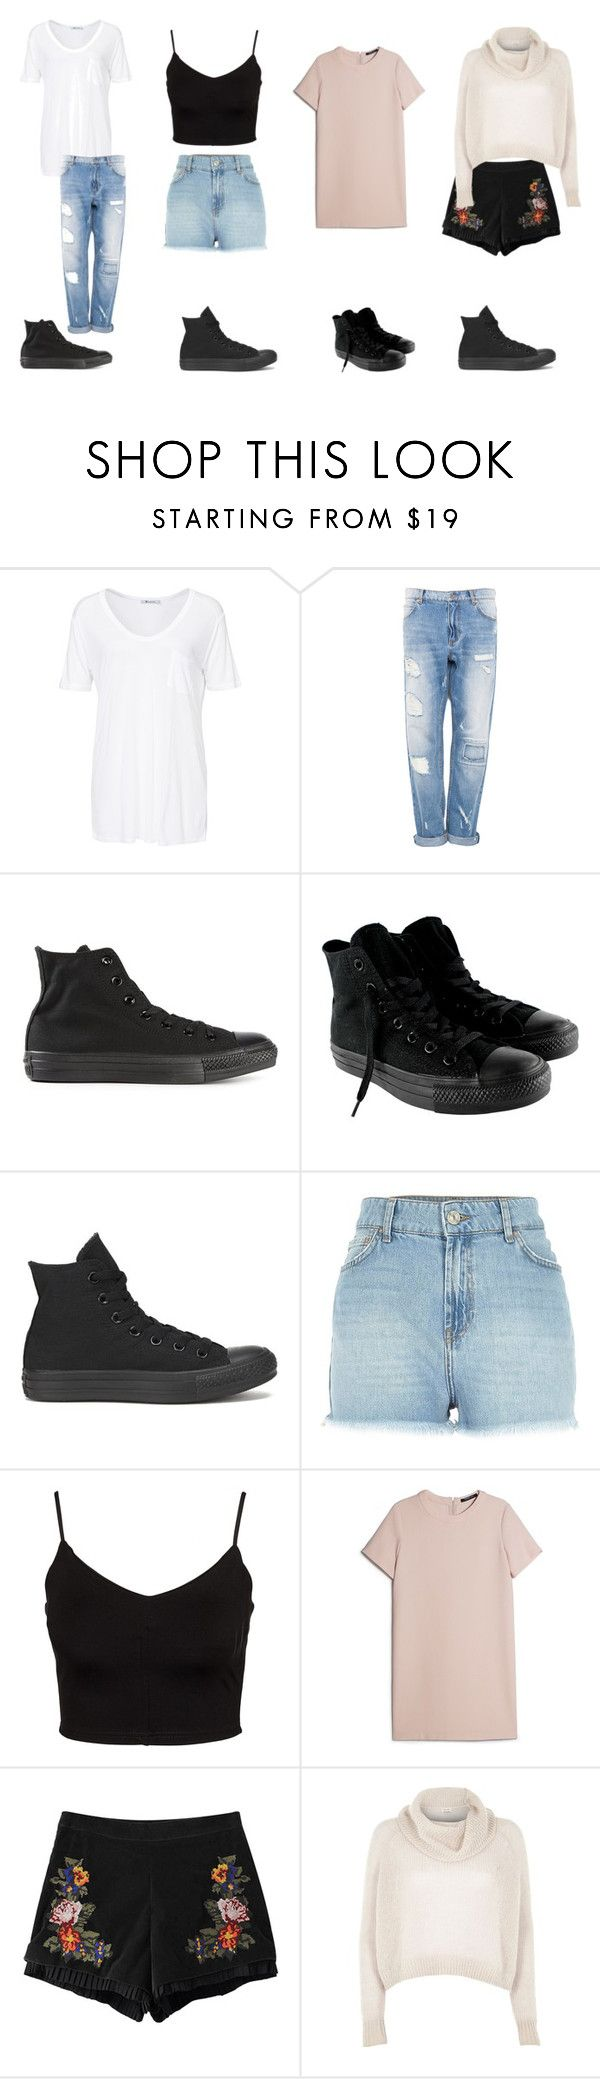 """""""Casual Outfits With High Top Black Converse"""" by samsus ❤ liked on Polyvore featuring T By Alexander Wang, Pull&Bear, Converse, River Island, Glamorous, MANGO, Chicnova Fashion, casual, converse and casualoutfit"""